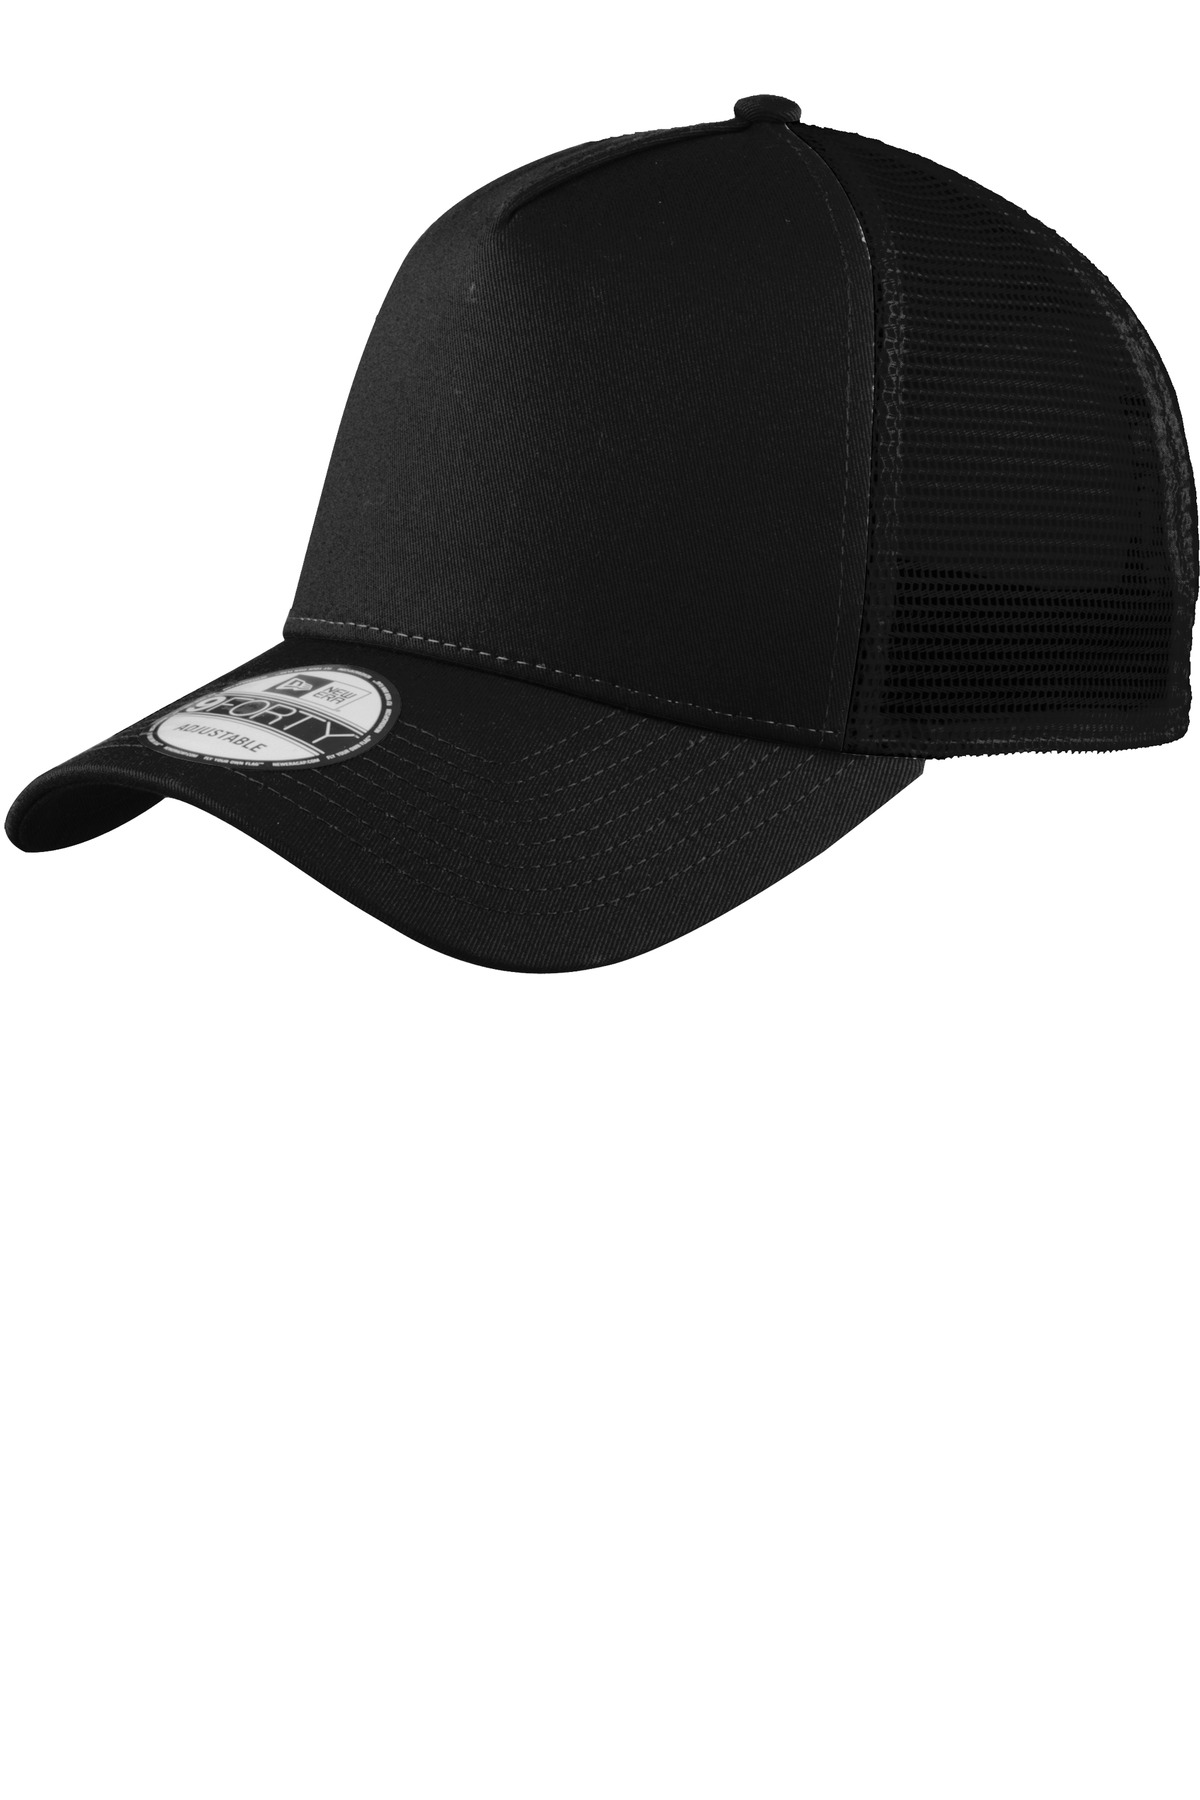 New Era ®  Snapback Trucker Cap. NE205 - Black/ Black